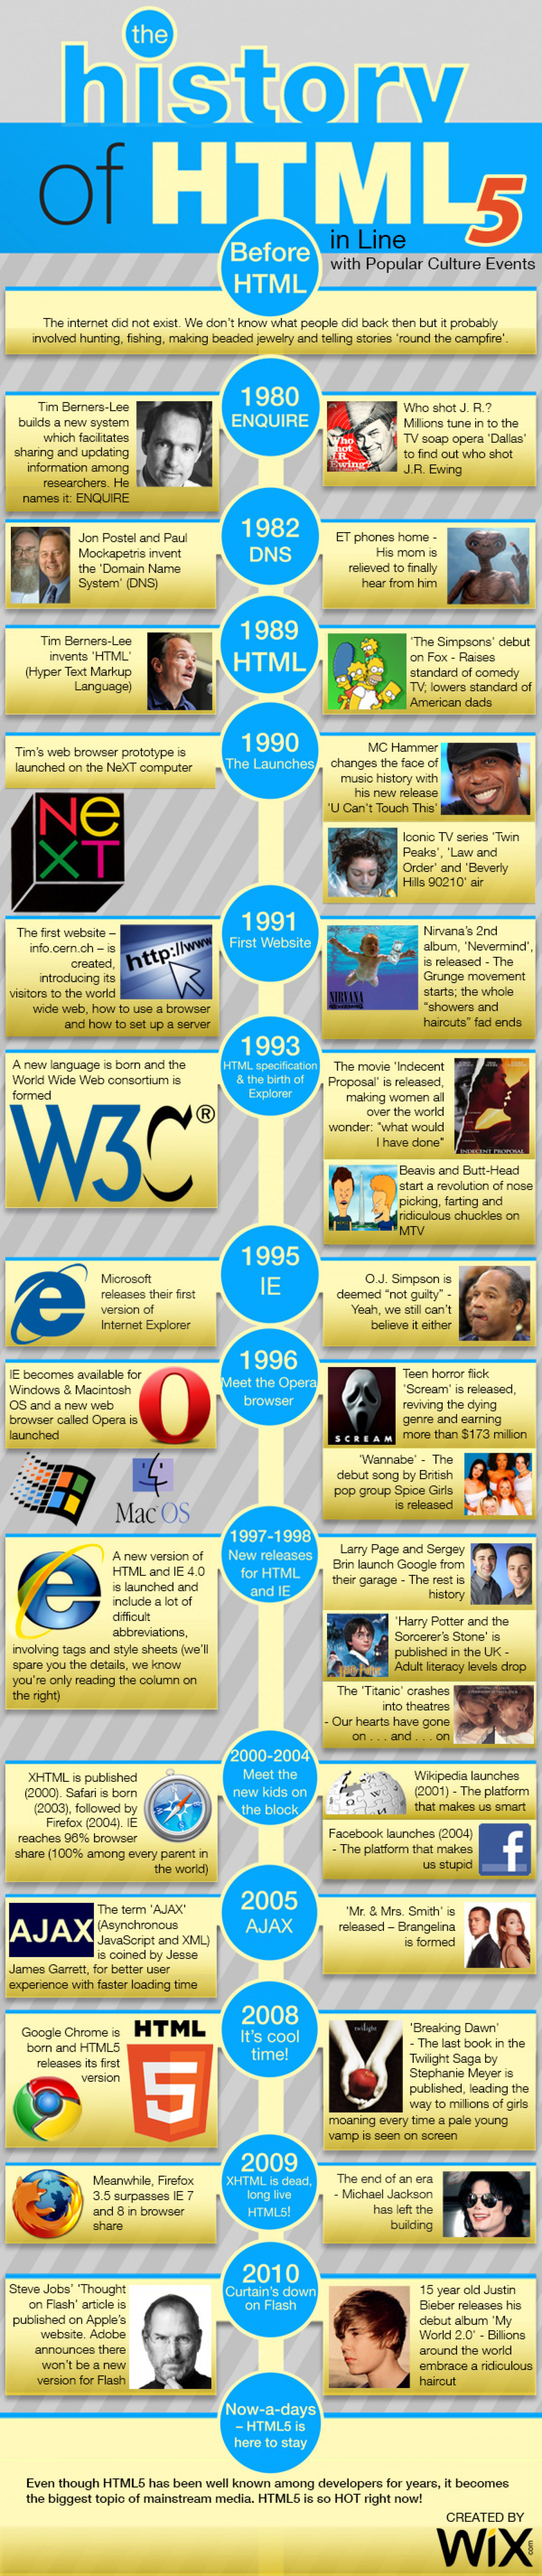 The History of HTML5 in Line with Popular Culture Events Infographic